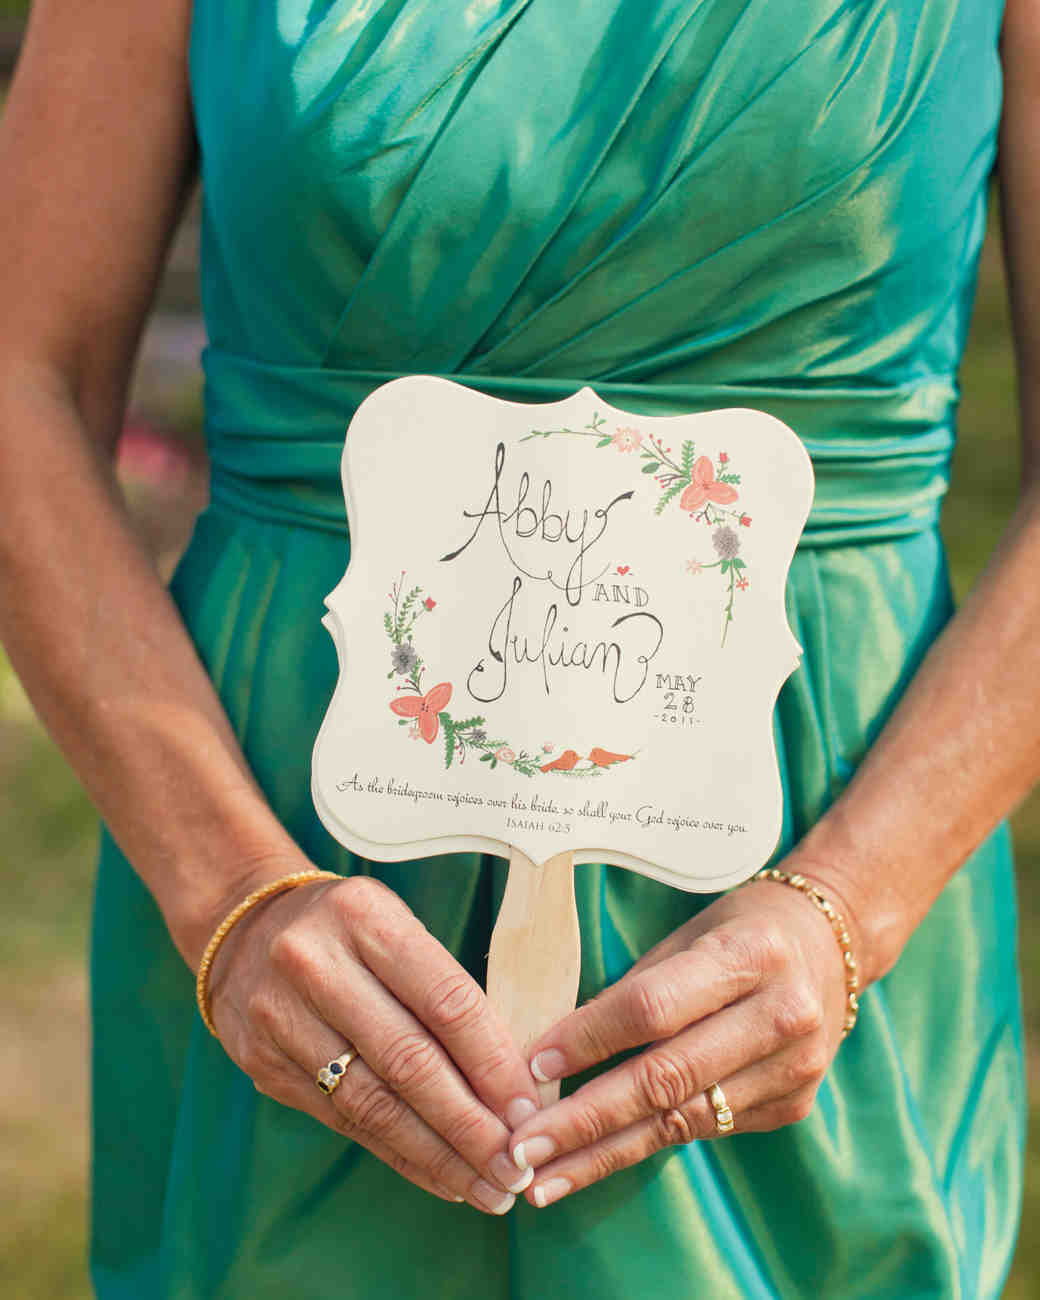 11 wedding program fans to keep guests cool martha stewart weddings